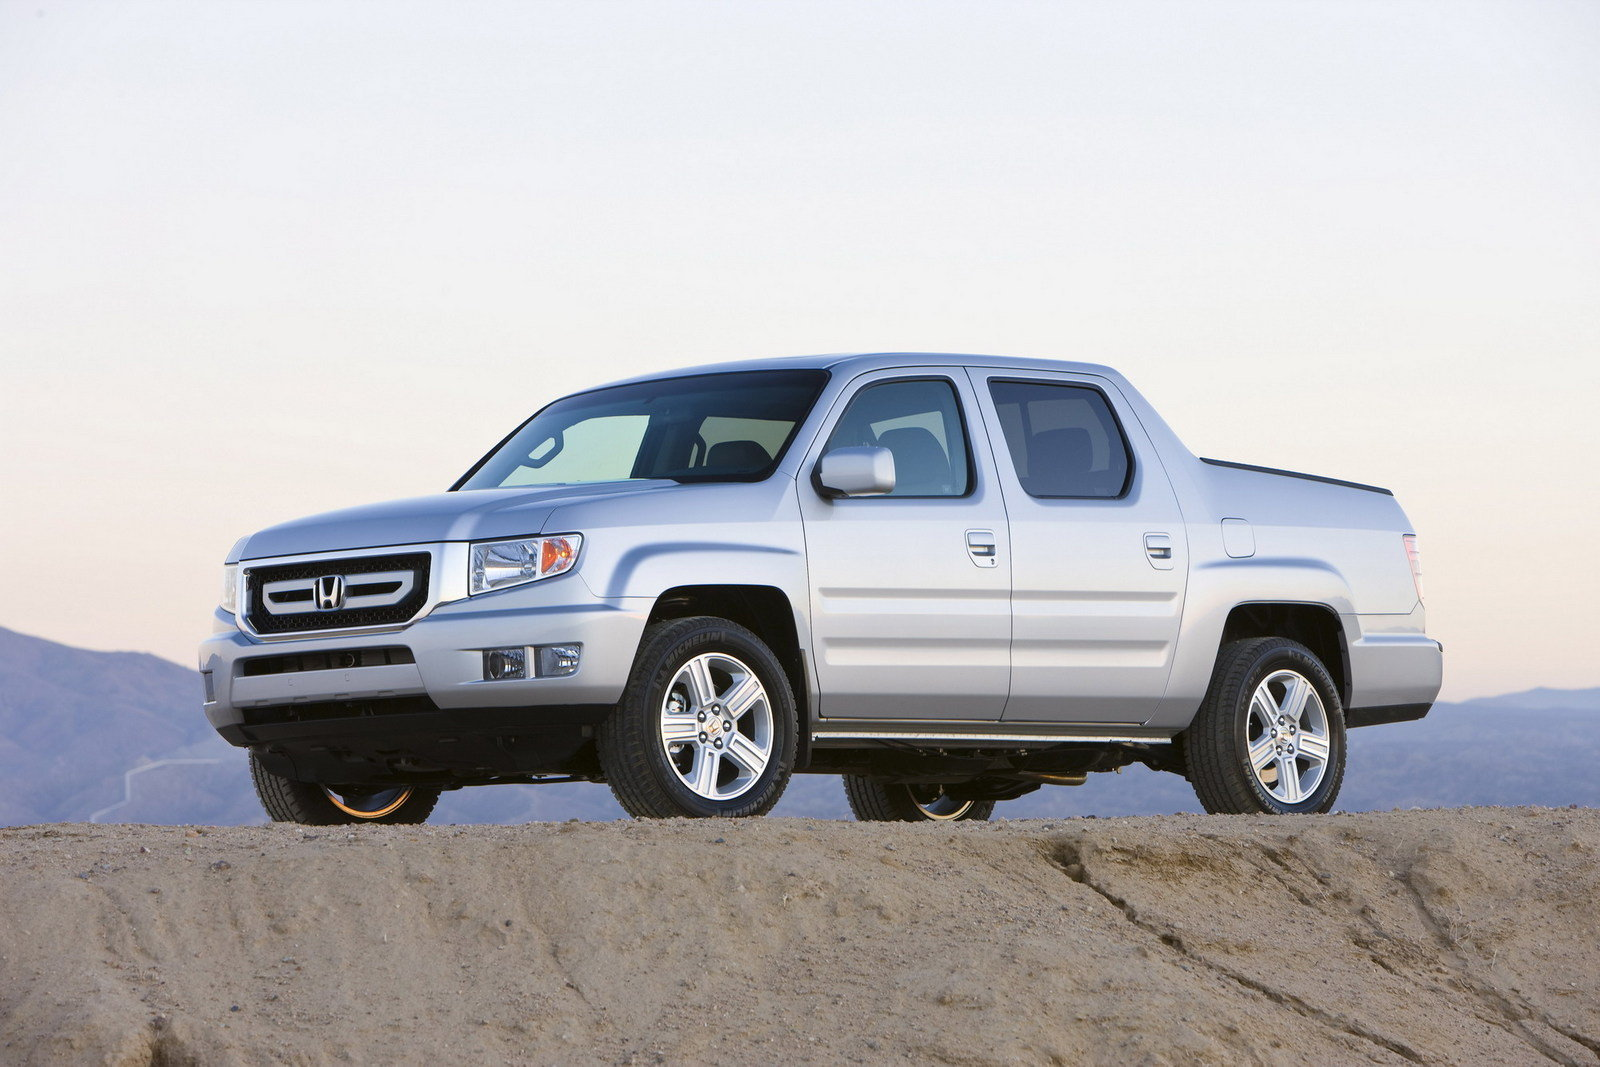 2011 honda ridgeline picture 368046 car review top speed. Black Bedroom Furniture Sets. Home Design Ideas